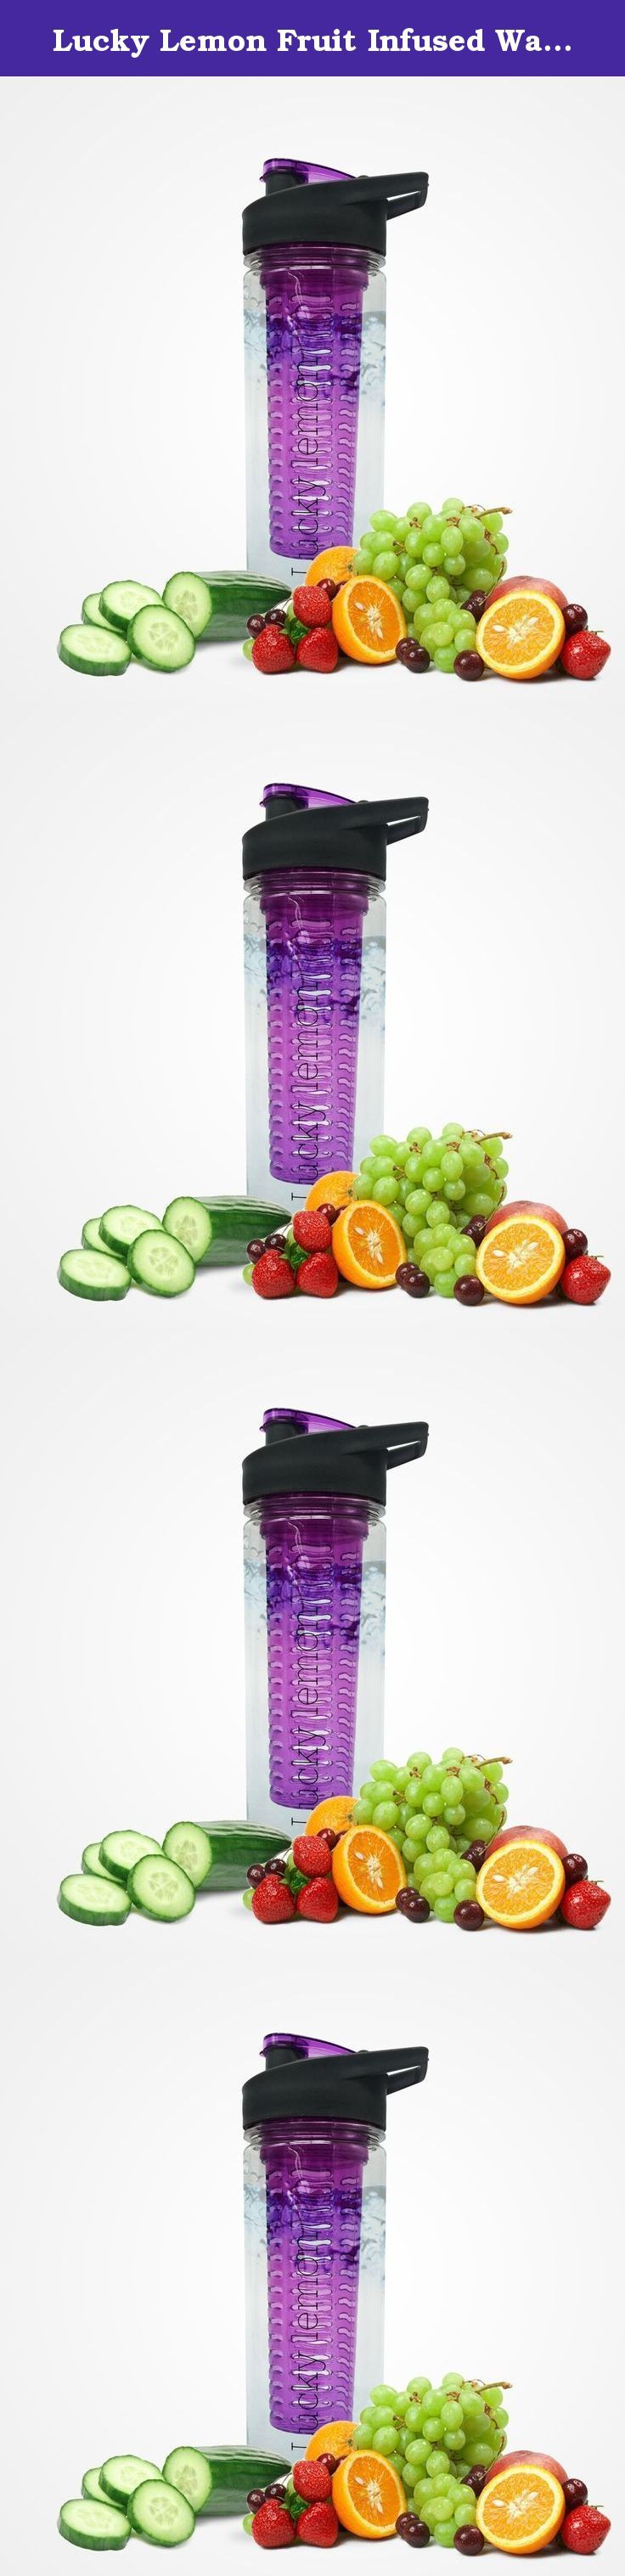 Lucky Lemon Fruit Infused Water Bottle Is a 100% BPA Free, Water Bottle Infuser Has Tritan Plastic, Fruit Infused Bottle Is 30 Oz with Multiple Colors to Choose From. (Purple). Why would drink bland water when you can buy a fruit infused water bottle and drink delicious fruit flavored water without all those chemicals and sugar. Keeps you hydrated through out the day. Helps you kick start that diet! Drinking fruit infused water will help weight loss as well as to improve your digestion…